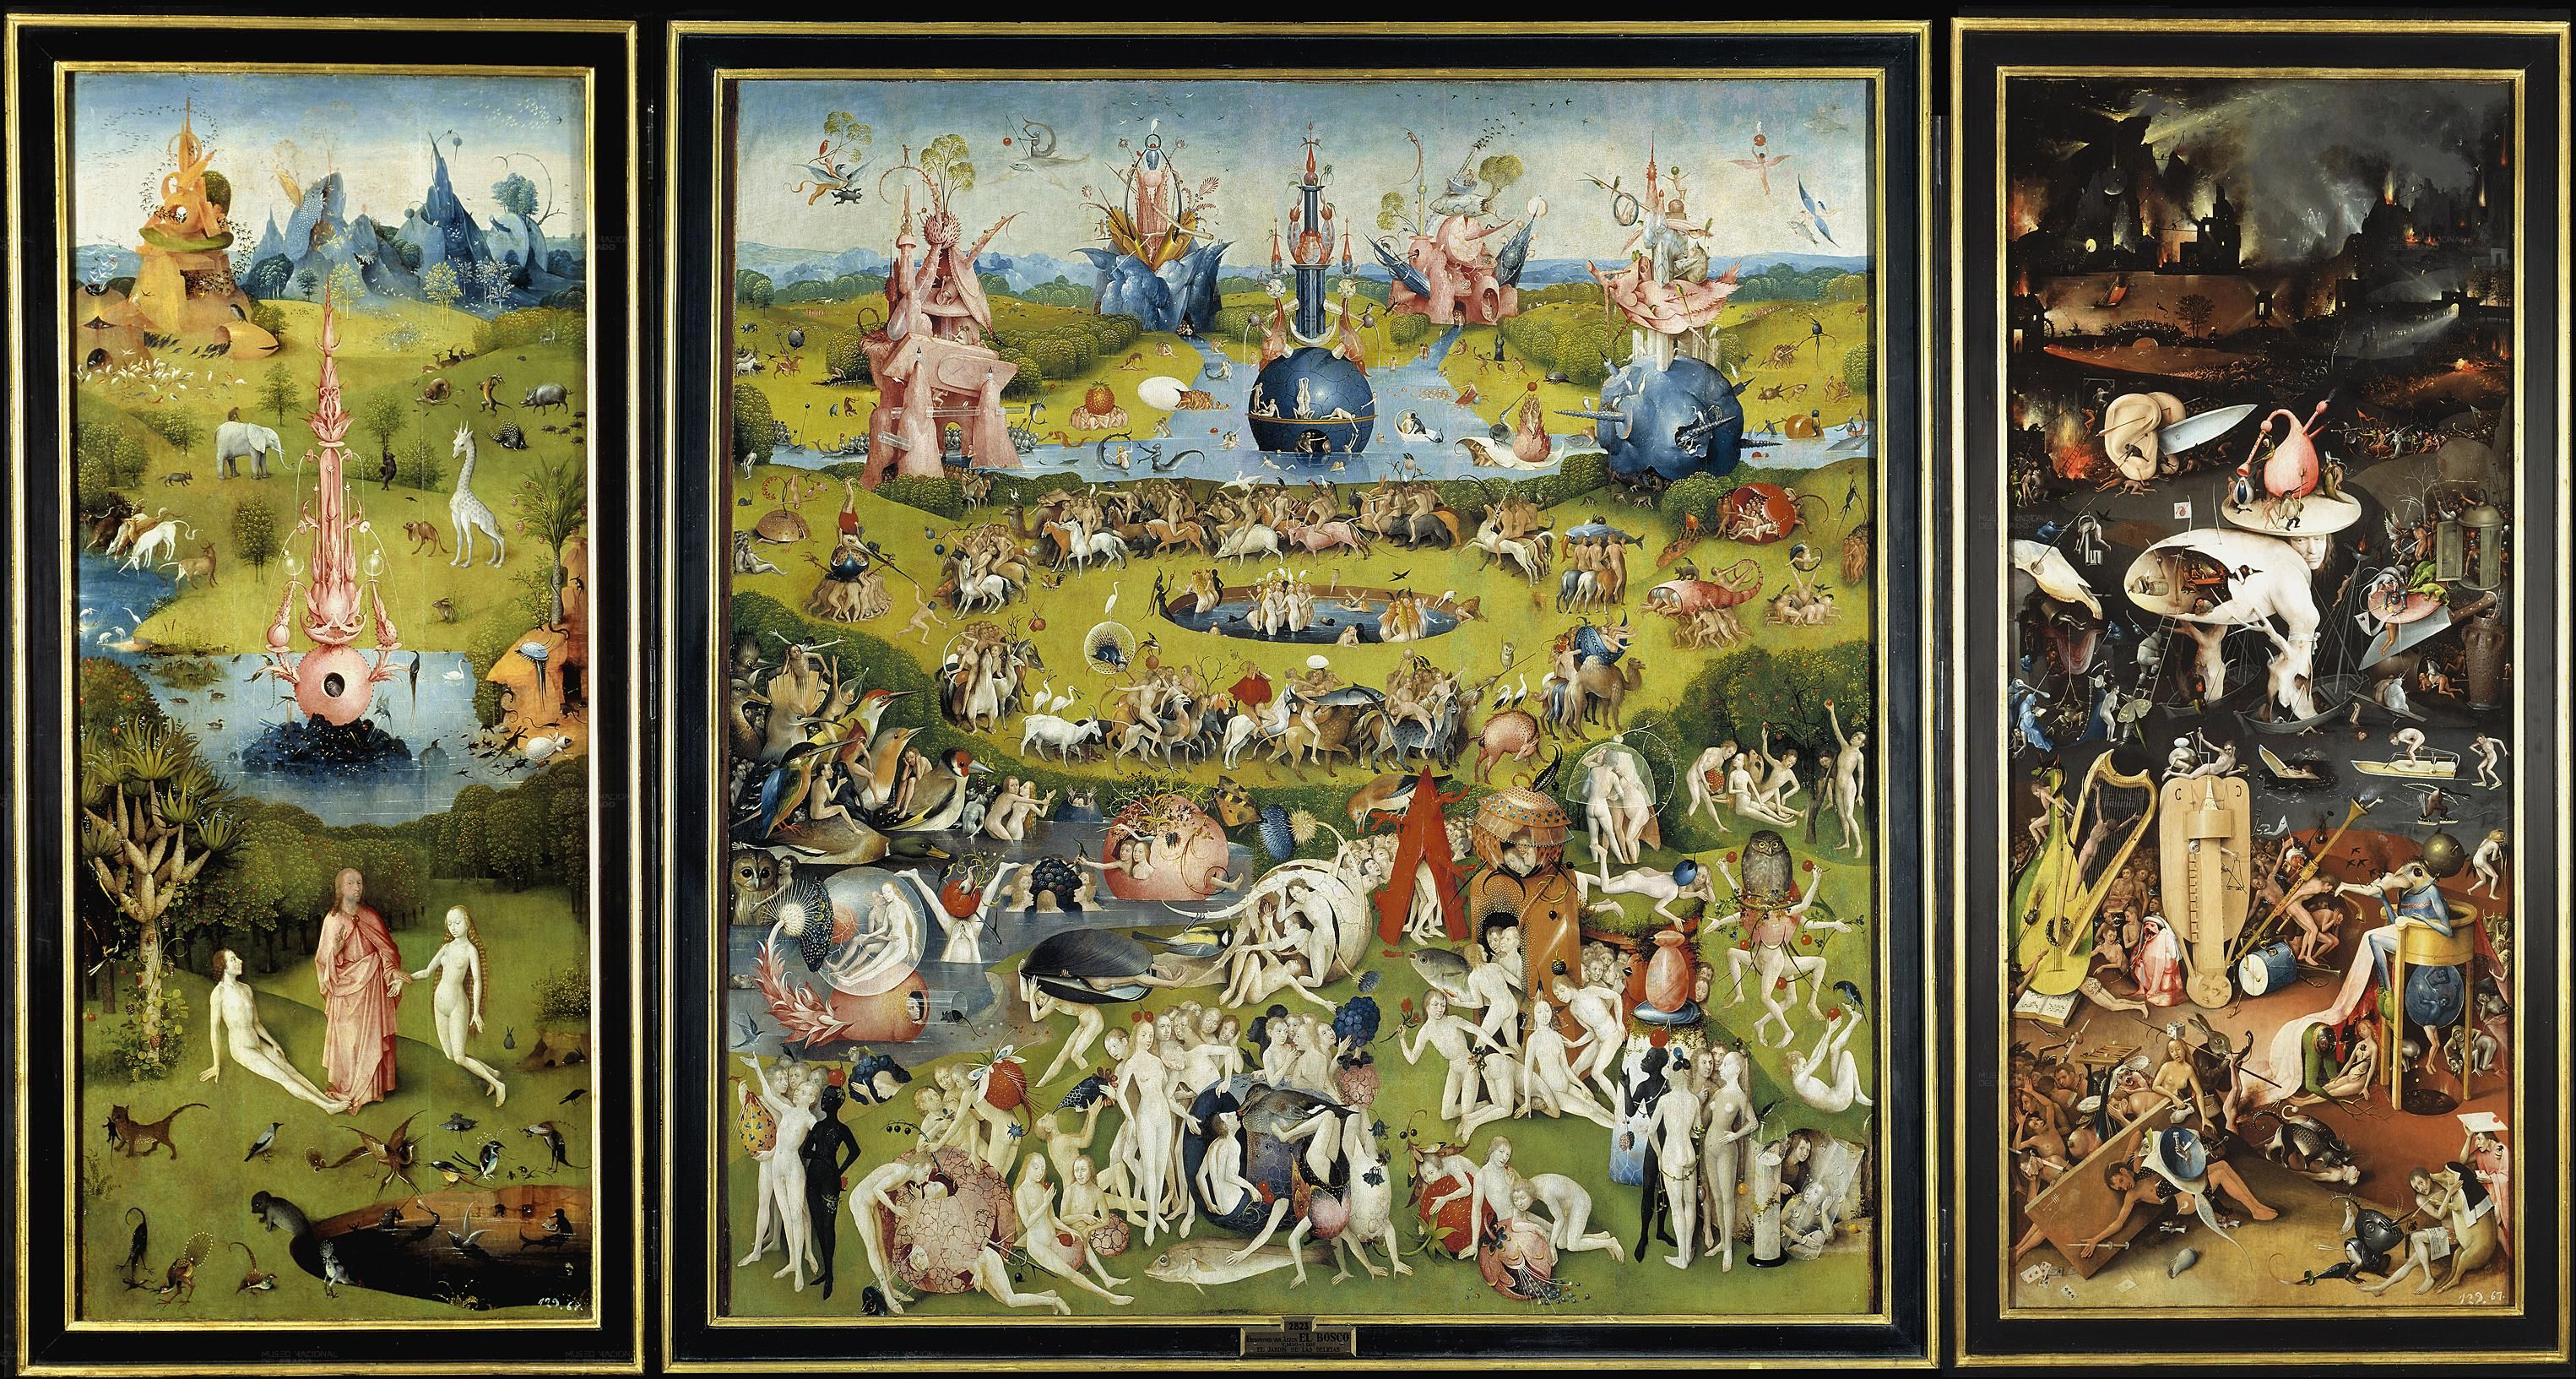 My Life in Art Gardens Hieronymus bosch and Heavens